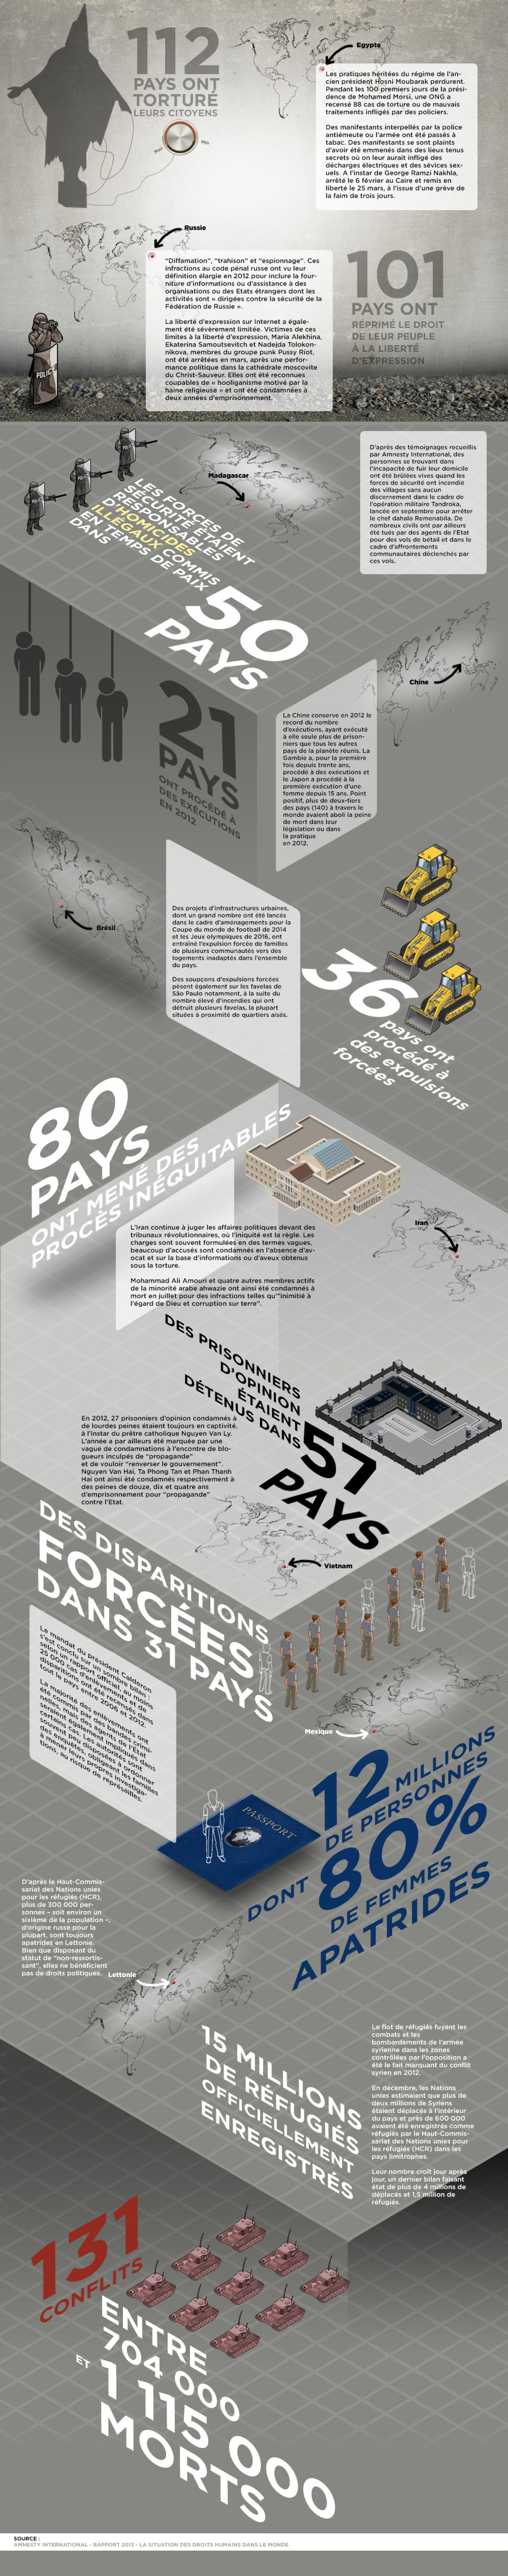 Amnesty international report 2013 Infographic